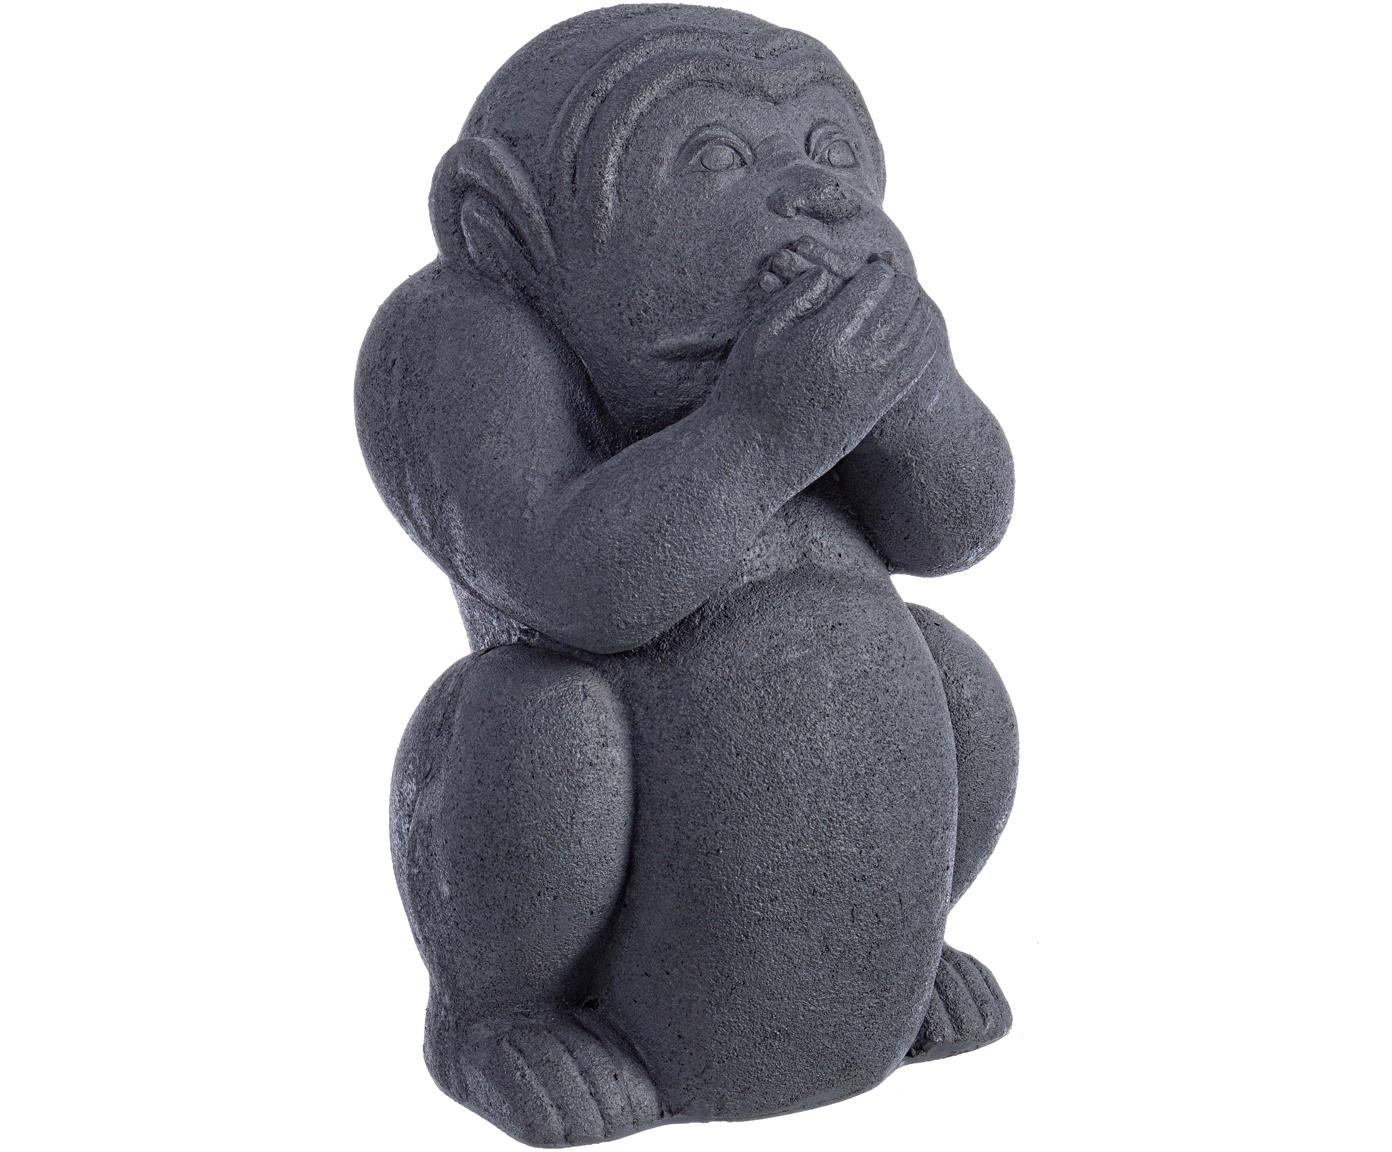 Oggetto decorativo Monkey, Cemento, rivestito, Antracite, Larg. 22 x Alt. 36 cm